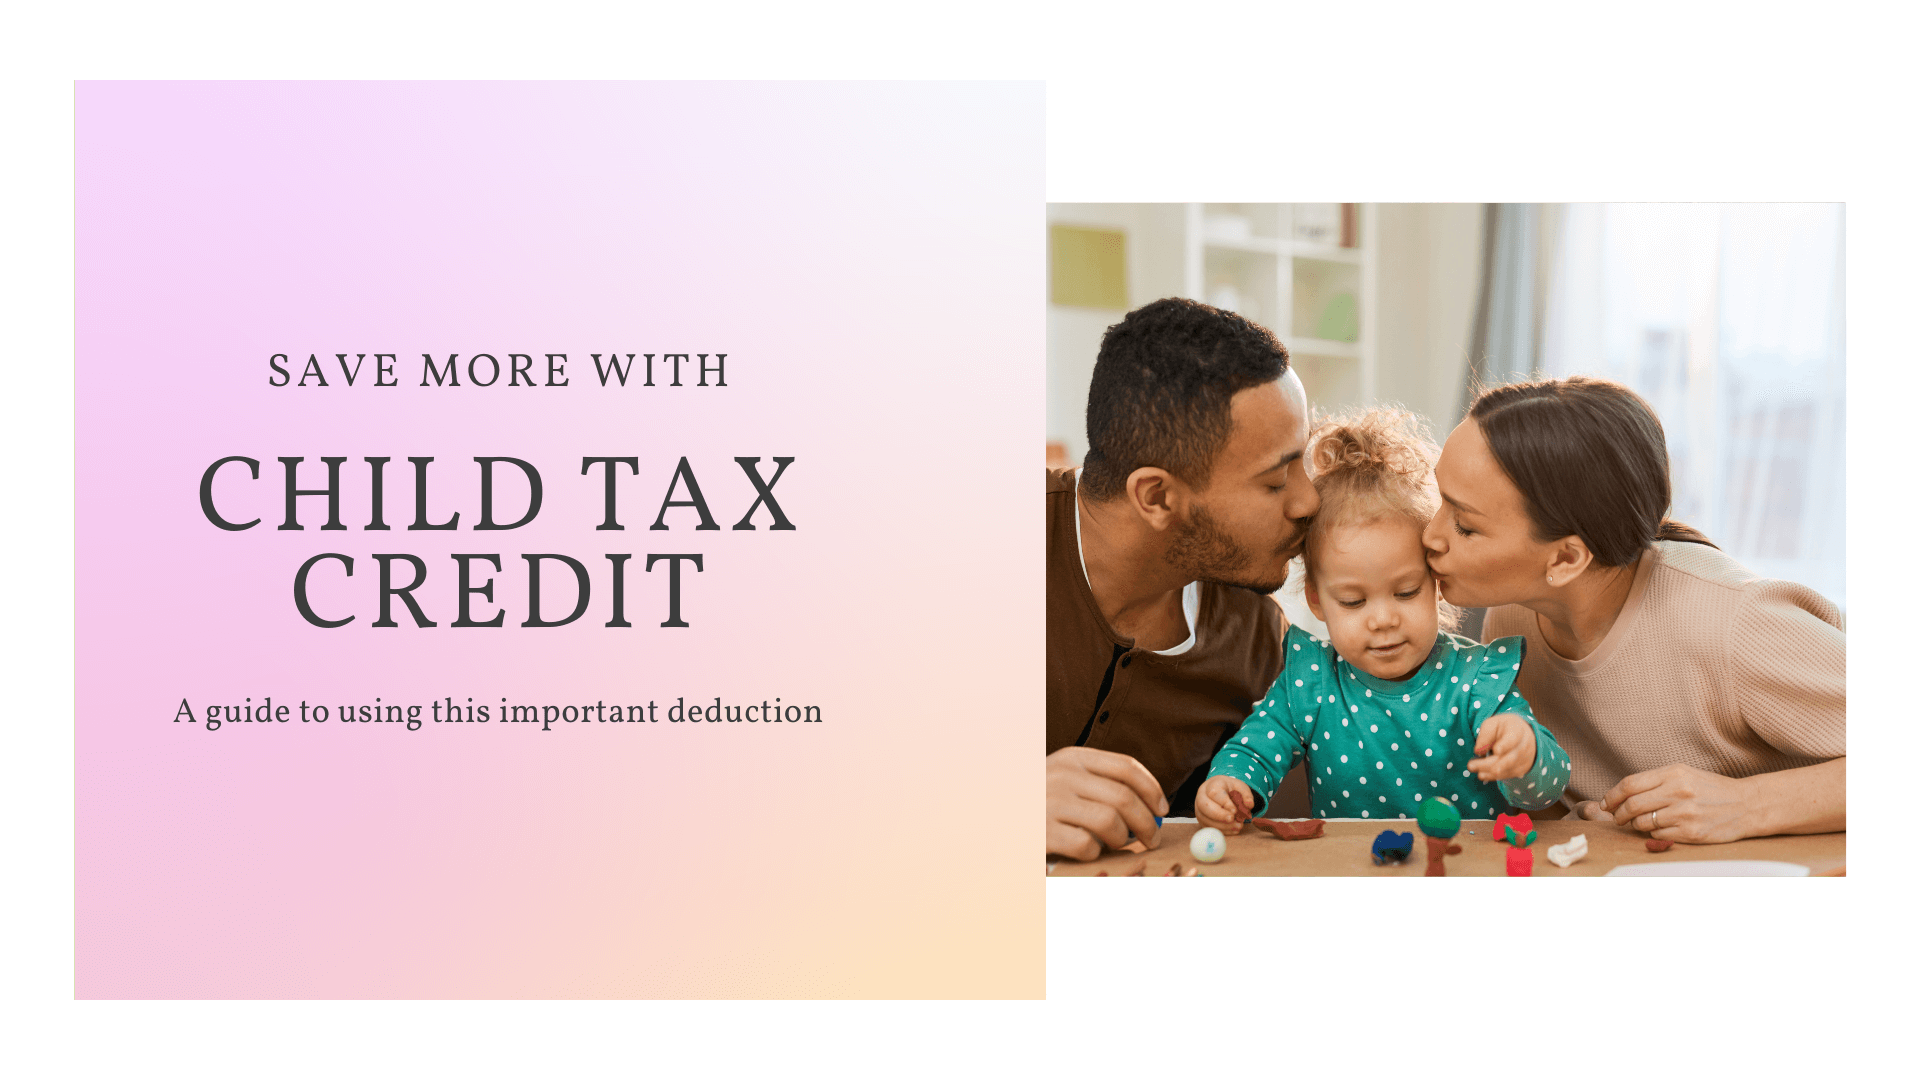 The child tax credit: Reconcile's guide to using this important money-saving deduction.